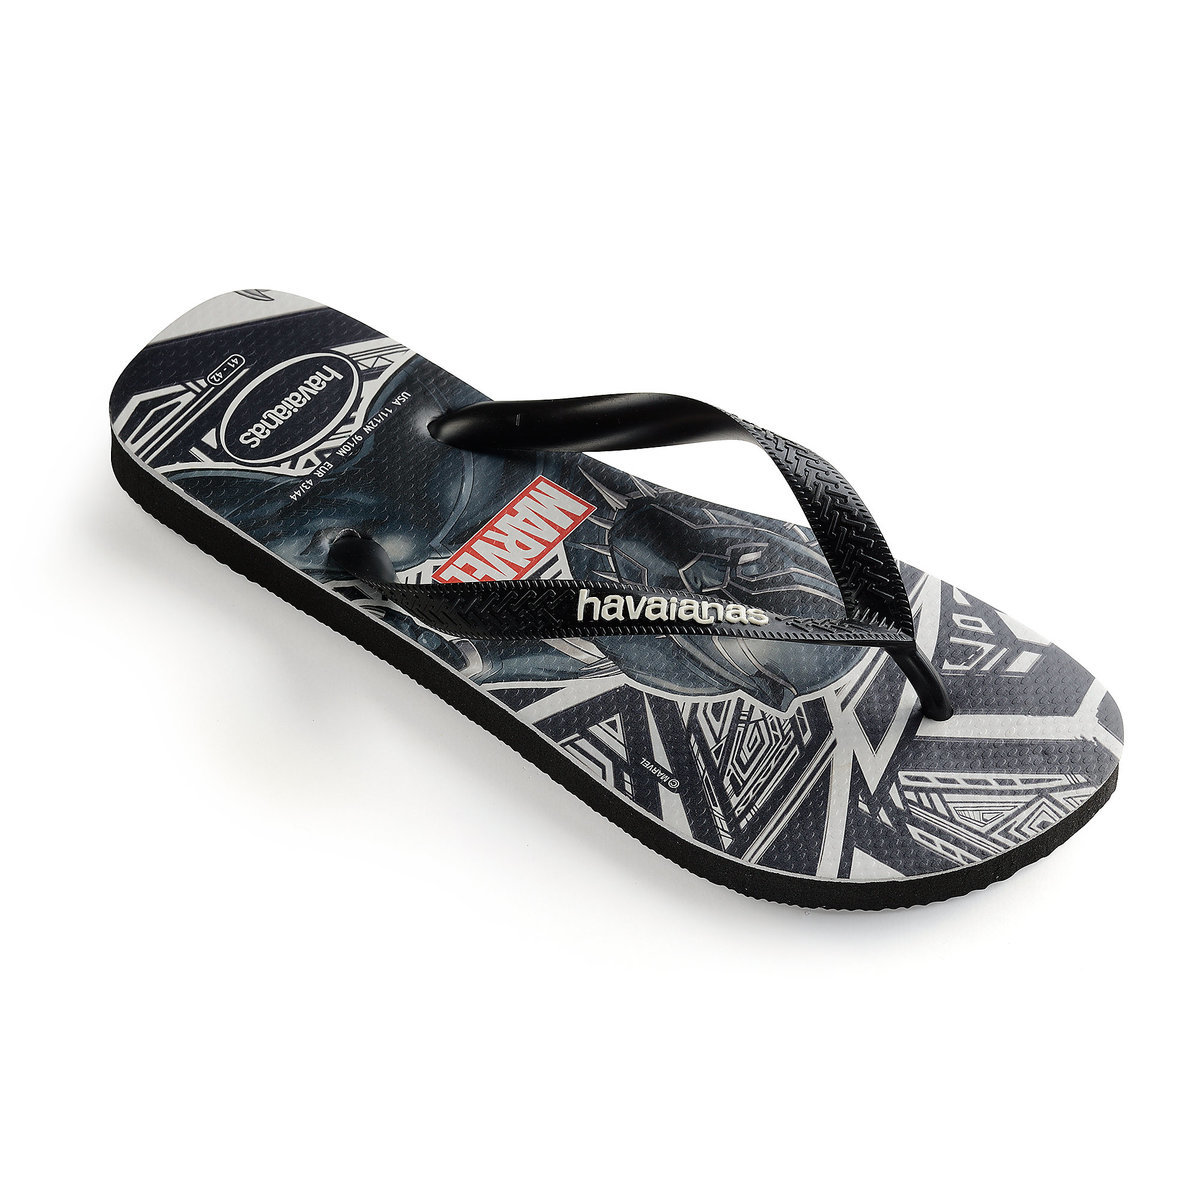 8fe15148a Product Image of Black Panther Flip Flops for Men by Havaianas   1